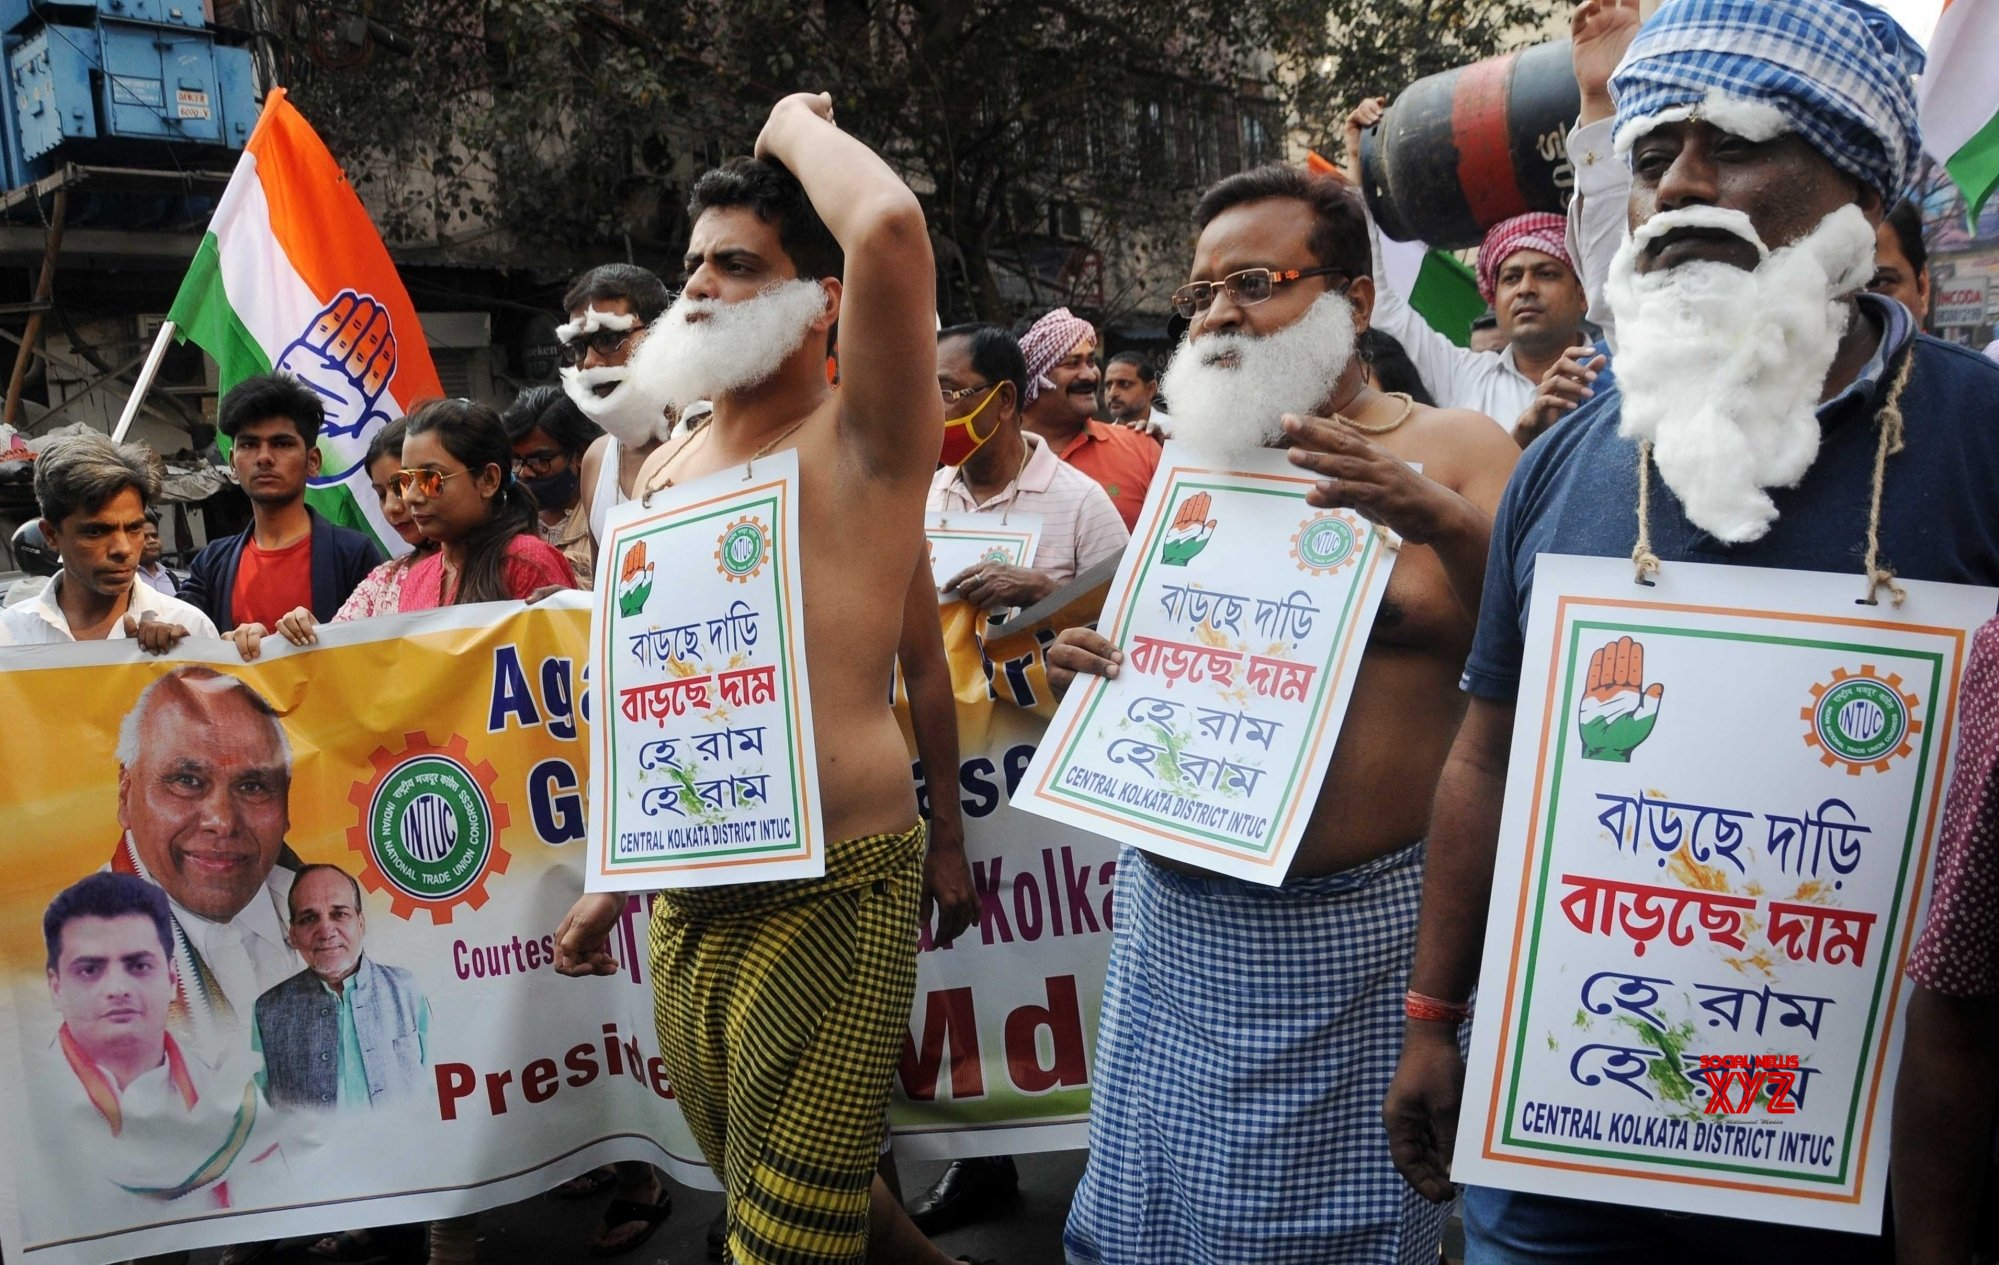 Kolkata: INTUC activists took part in a protest rally against fuel and essential products price hike in Kolkata on Tuesday 23rd February, 2021 #Gallery